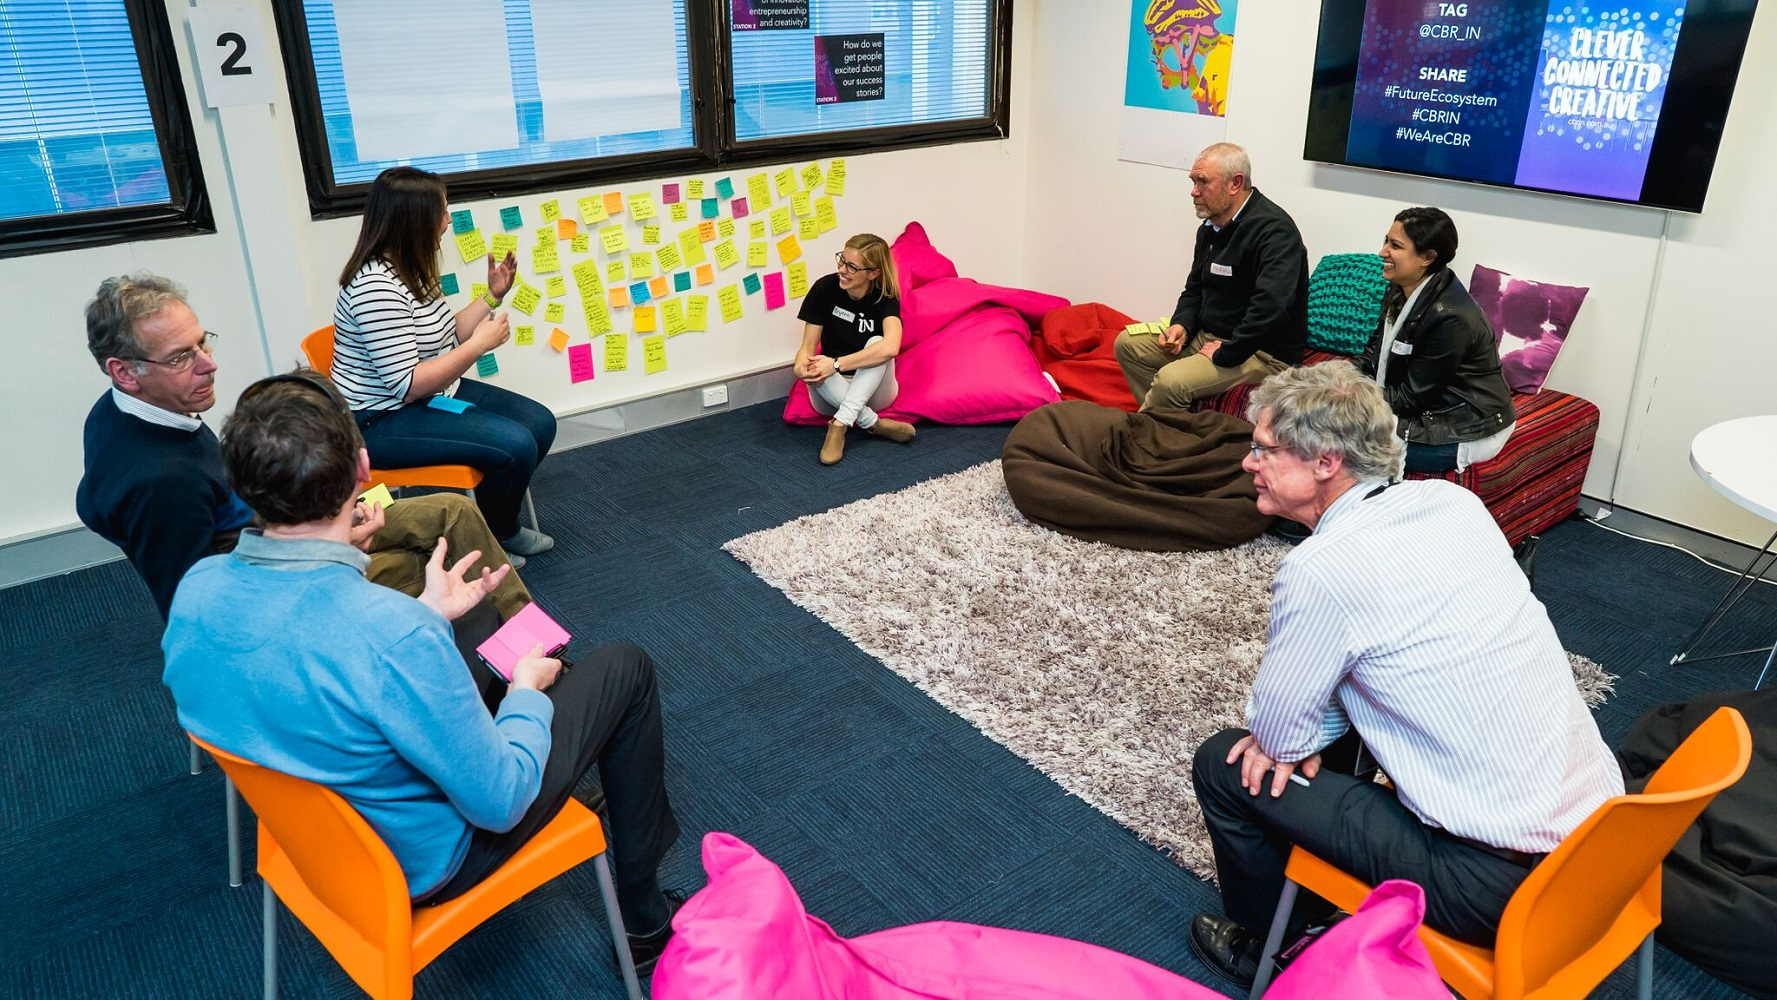 A workshop being run by the Canberra Innovation Network